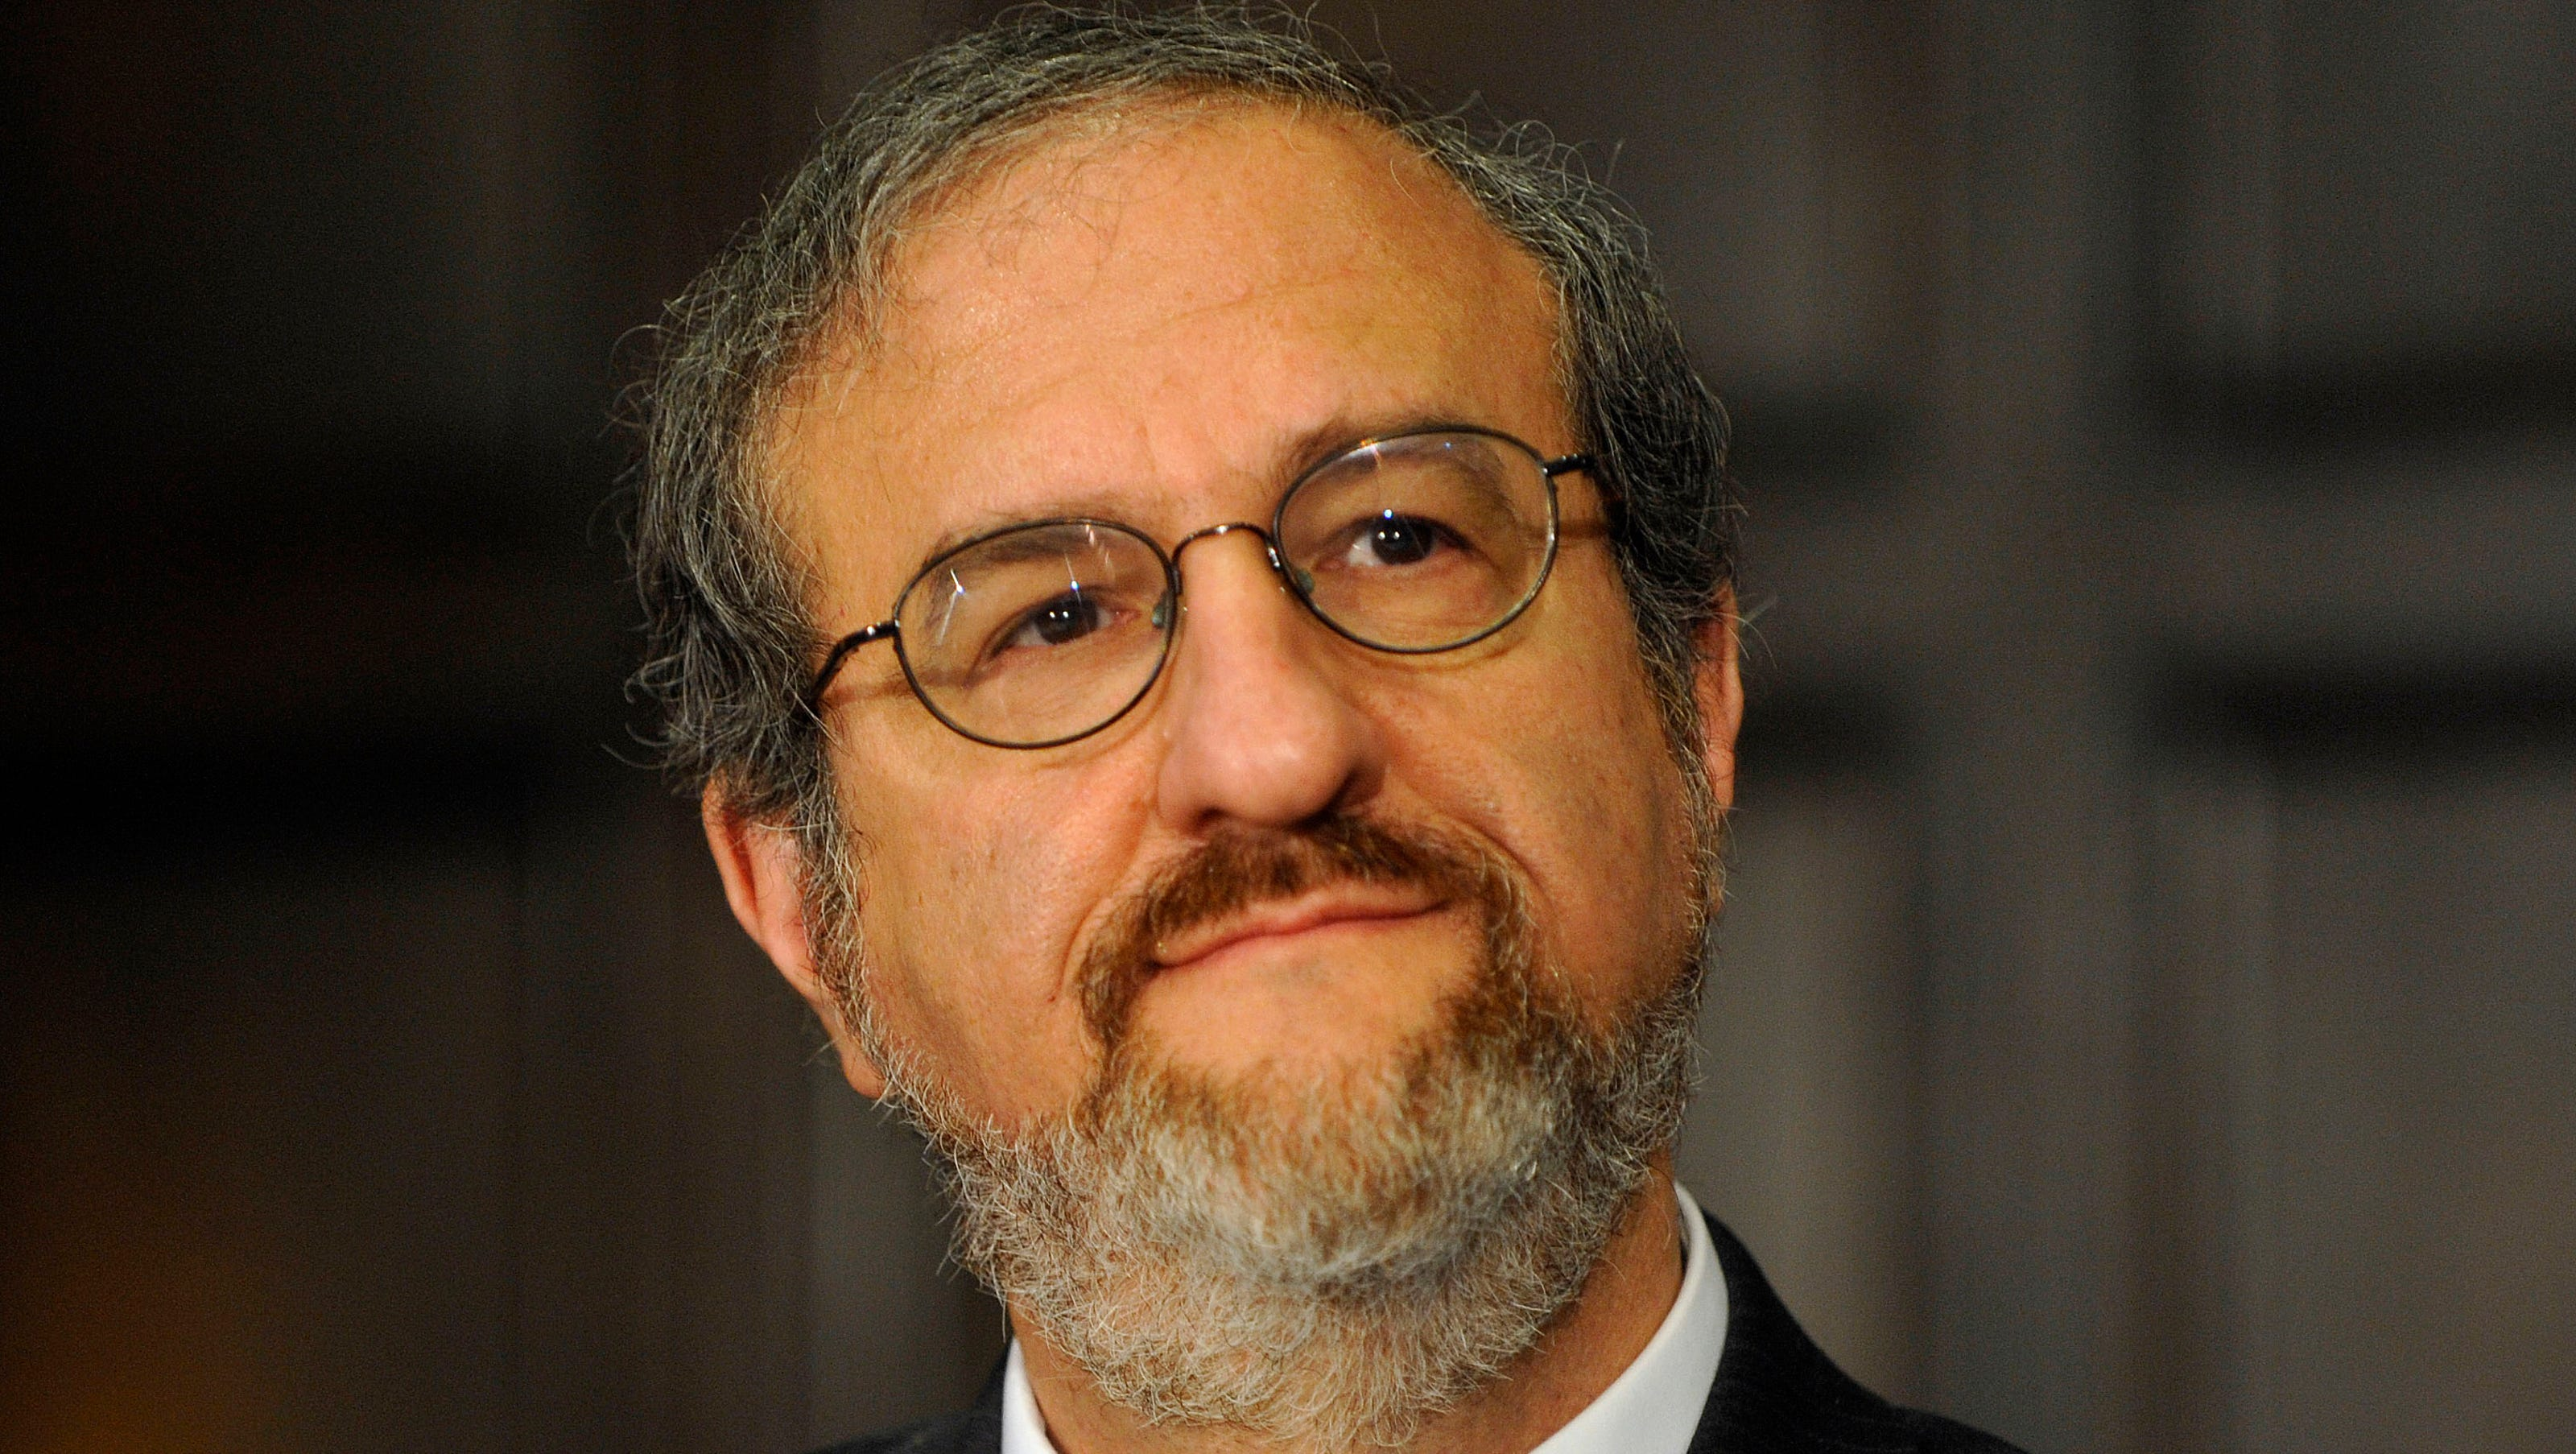 UM president Schlissel on Morris: 'Our system failed'